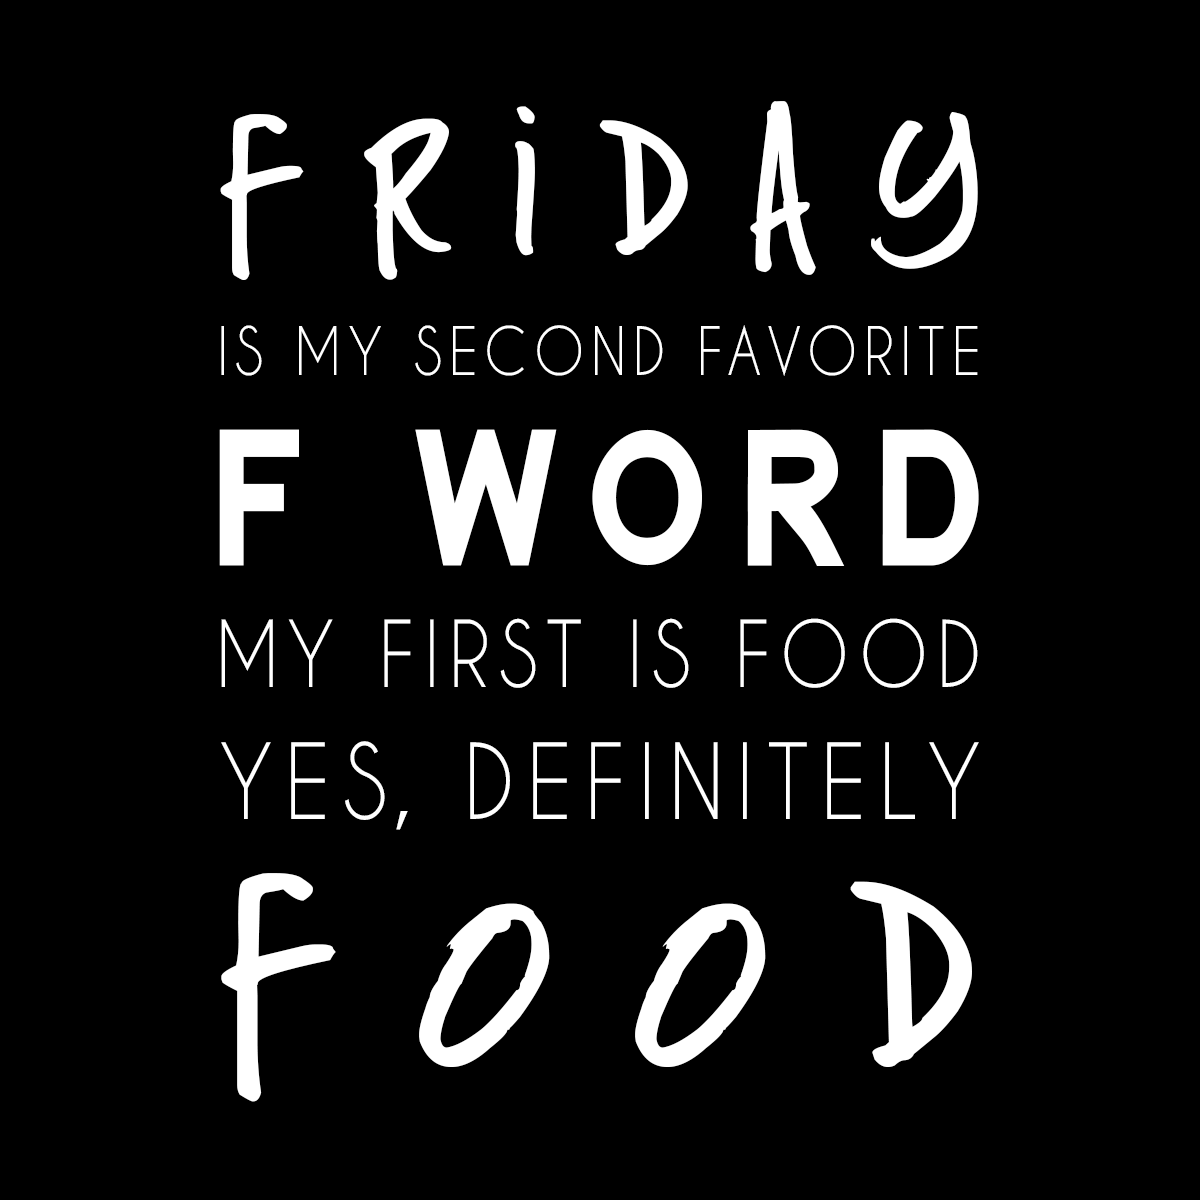 Weeell, food might be my third favorite F word.... but let